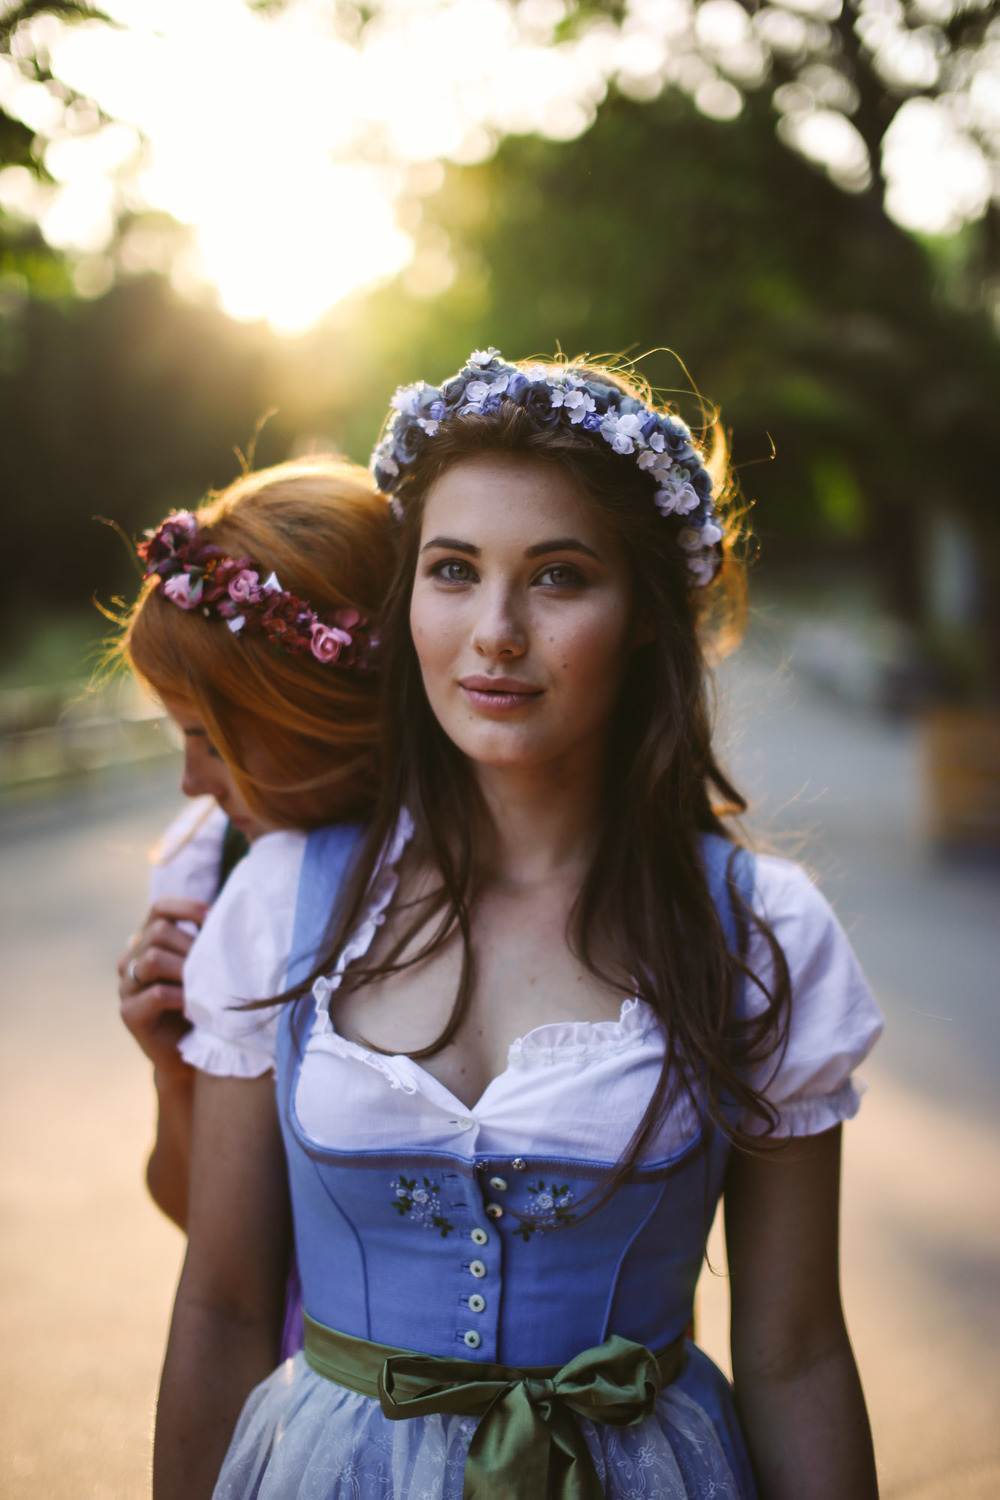 ADA16_Lookbook_We_are_flowergirls_blumenkranz_trachten_flowercrown_(28_von_40)_WEB.jpg